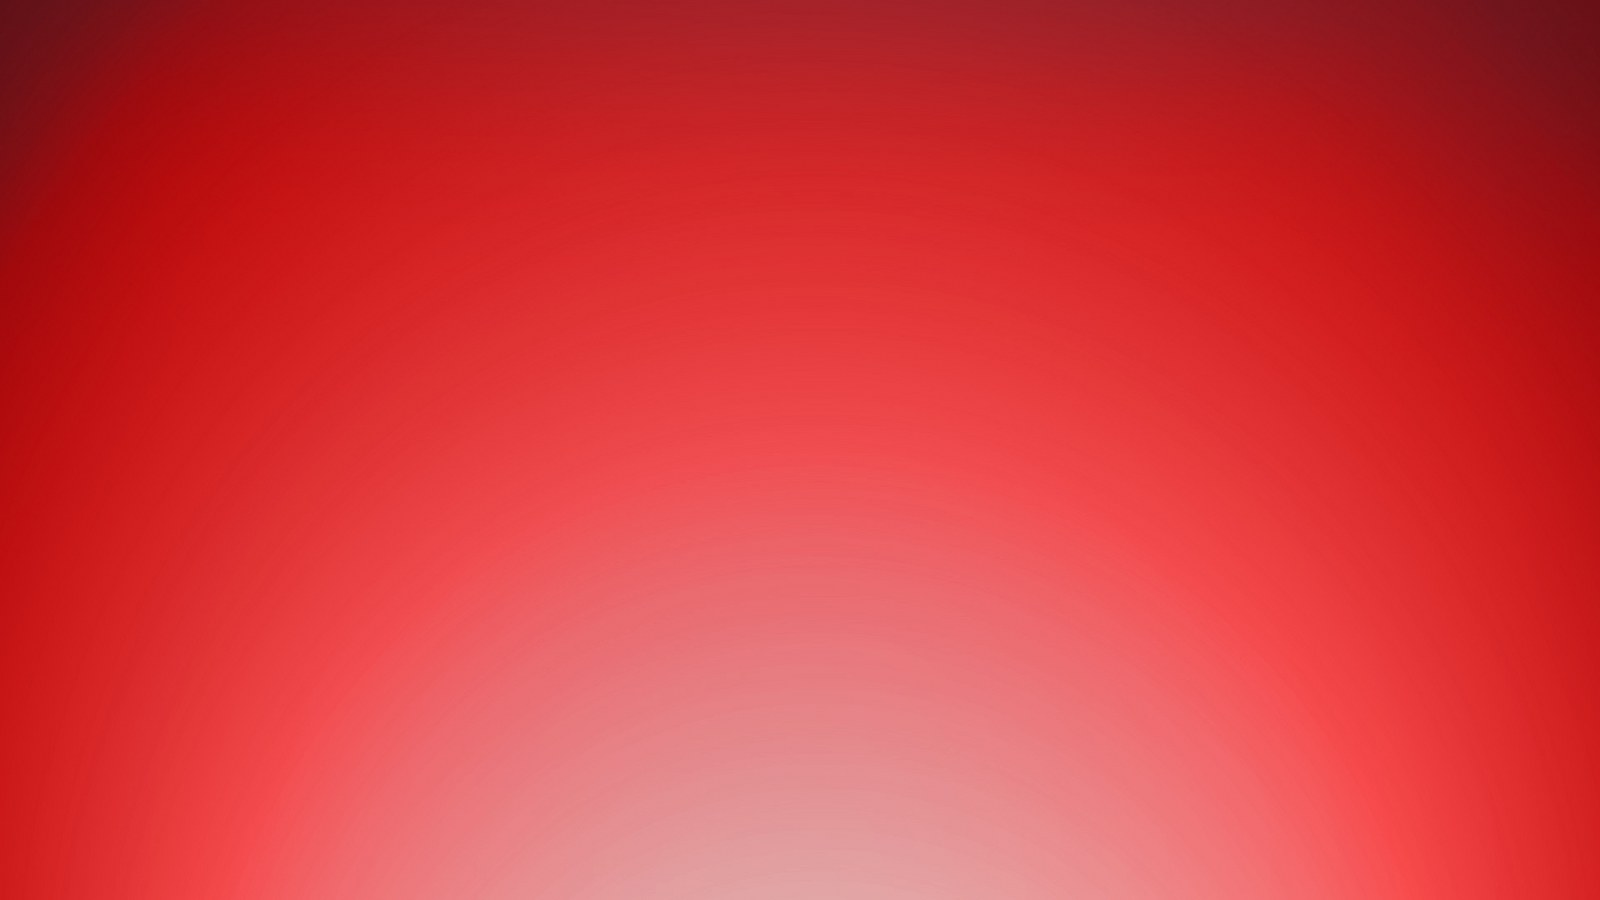 red background texture downloads is high definition wallpaper you 1600x900